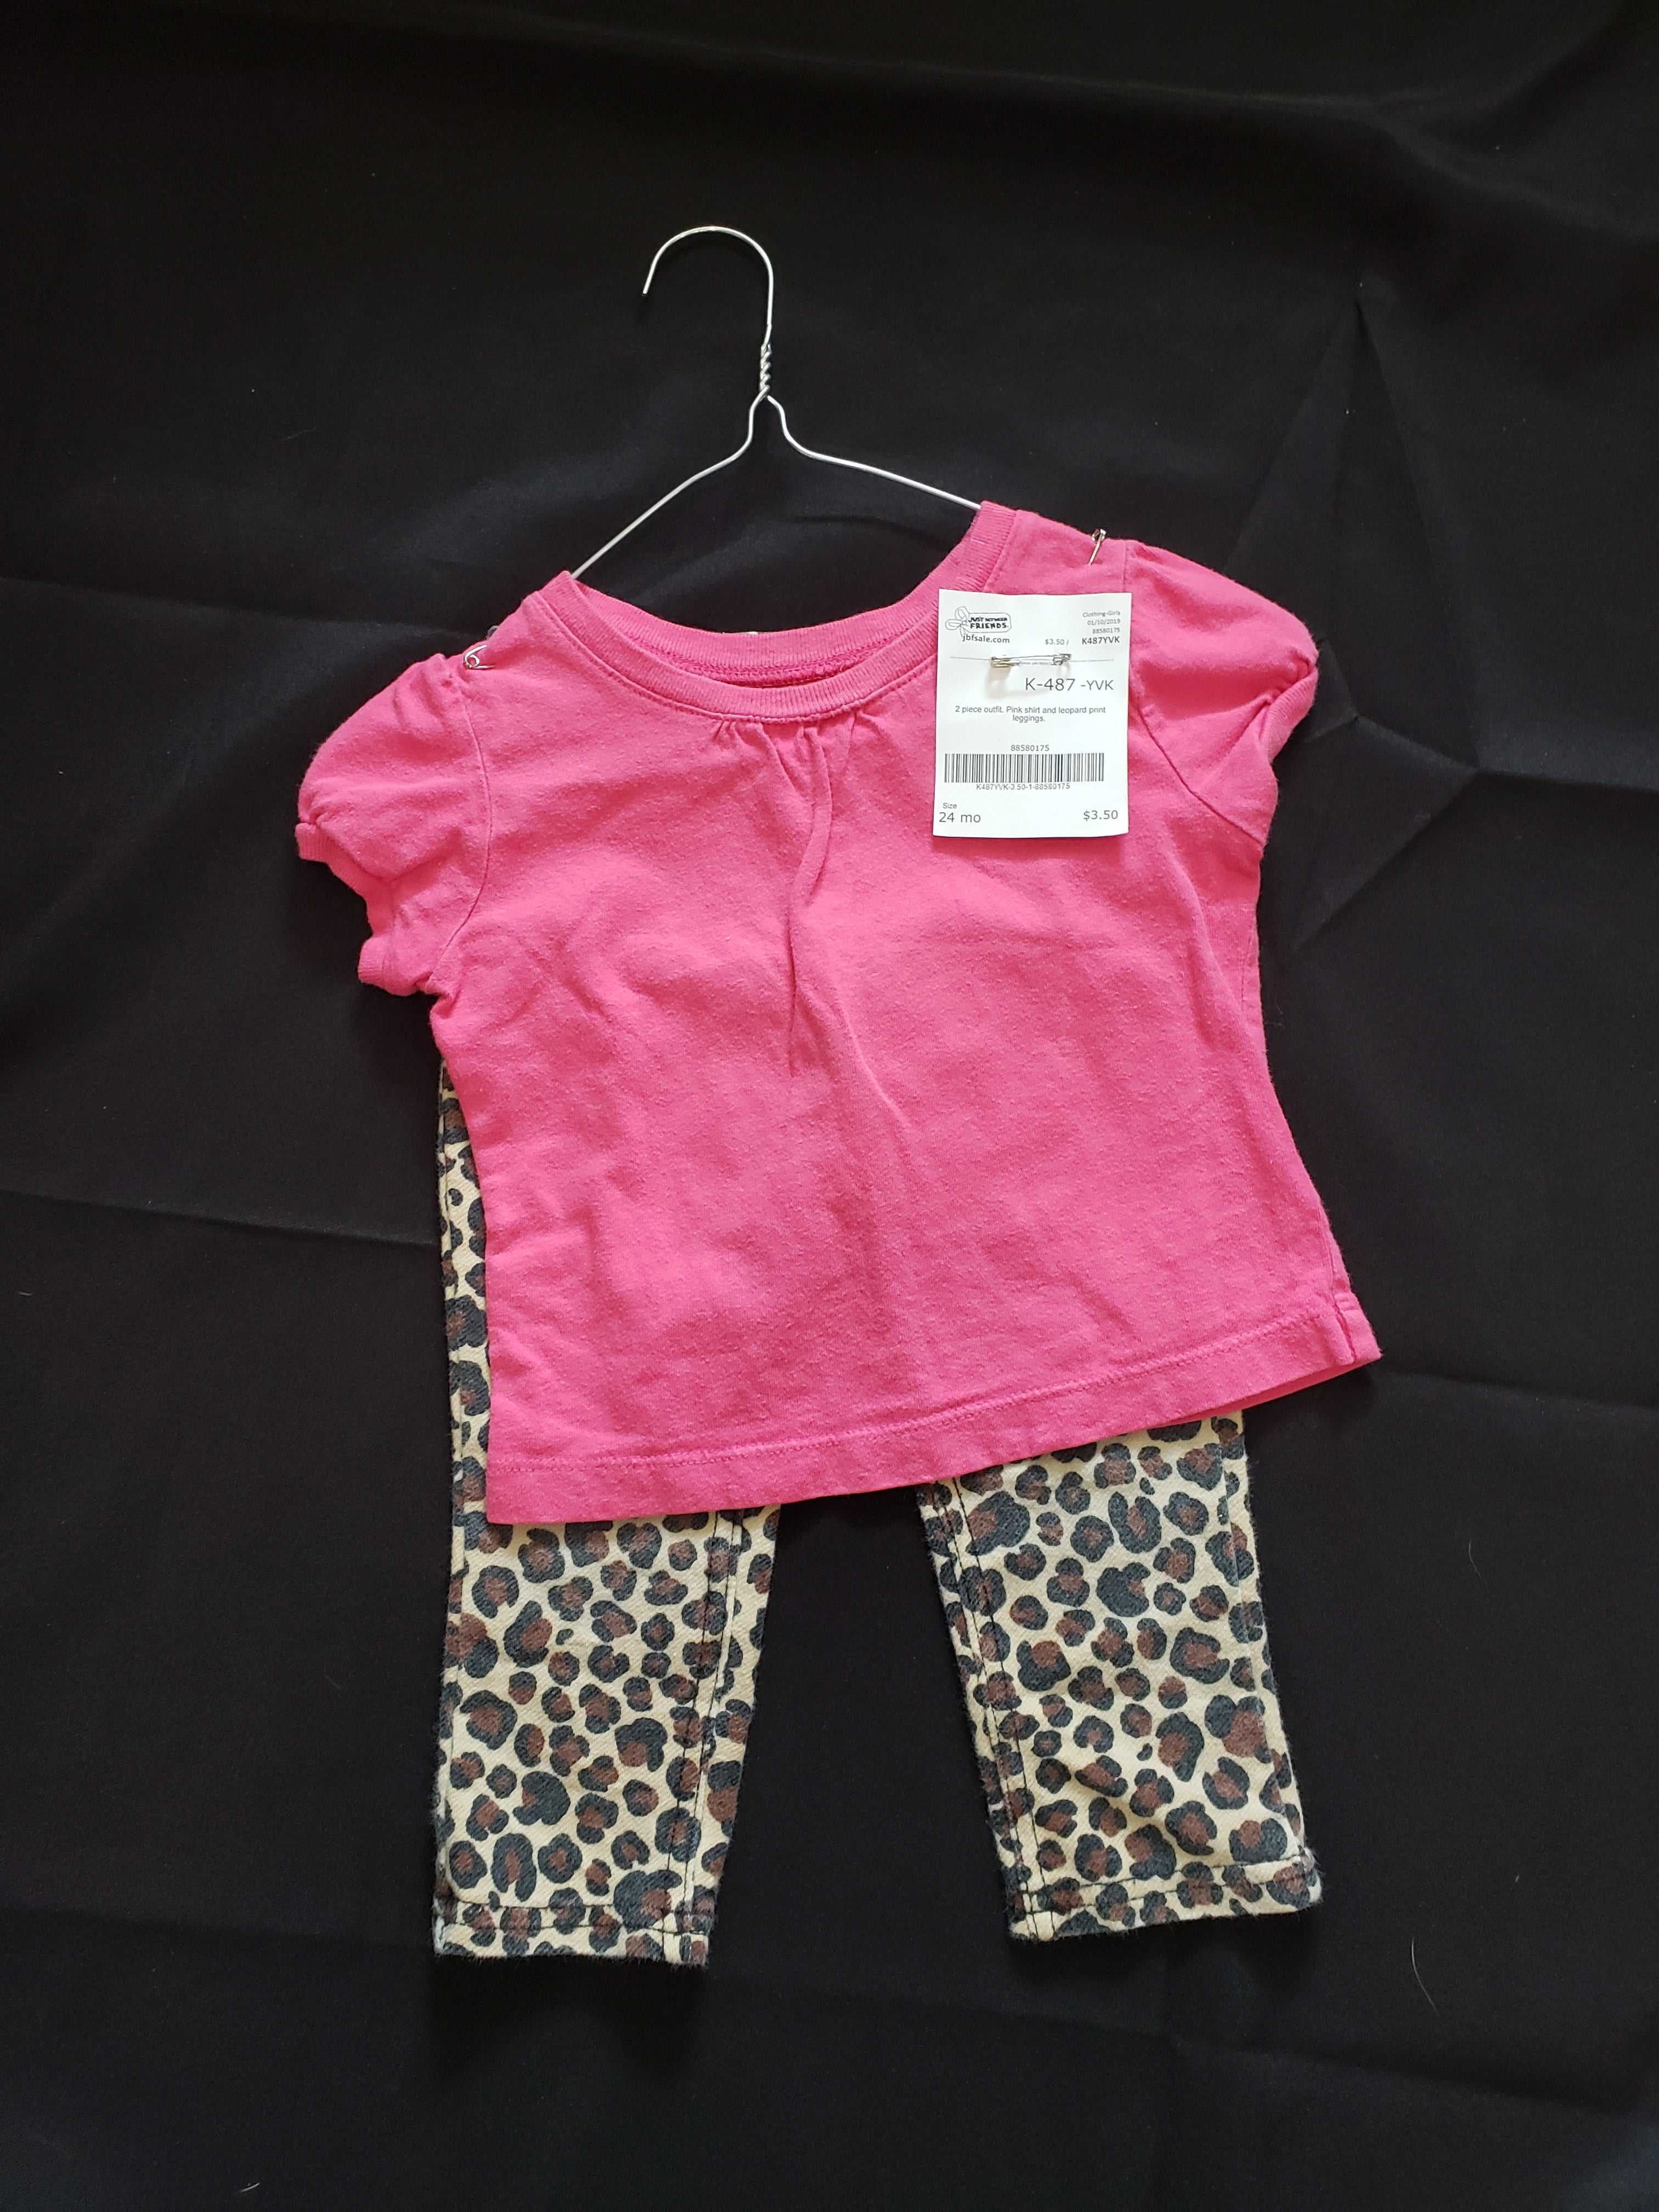 Size 24mo 2 piece outfit. Pink shirt and leopard print leggings